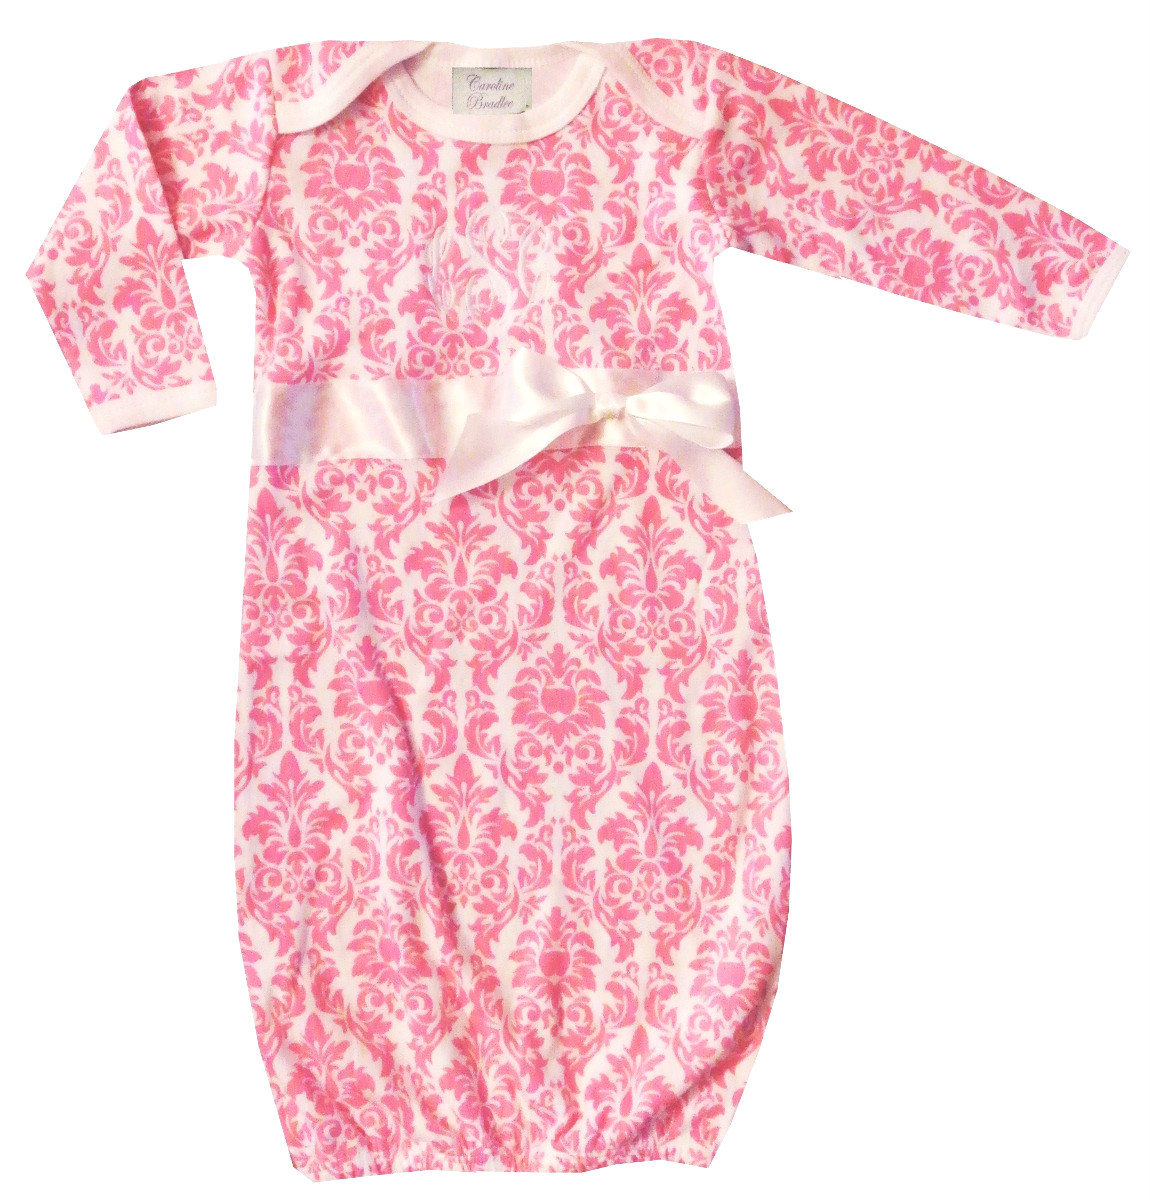 Monogrammed Baby Girl Infant Gown in Pink Damask with Optional ...